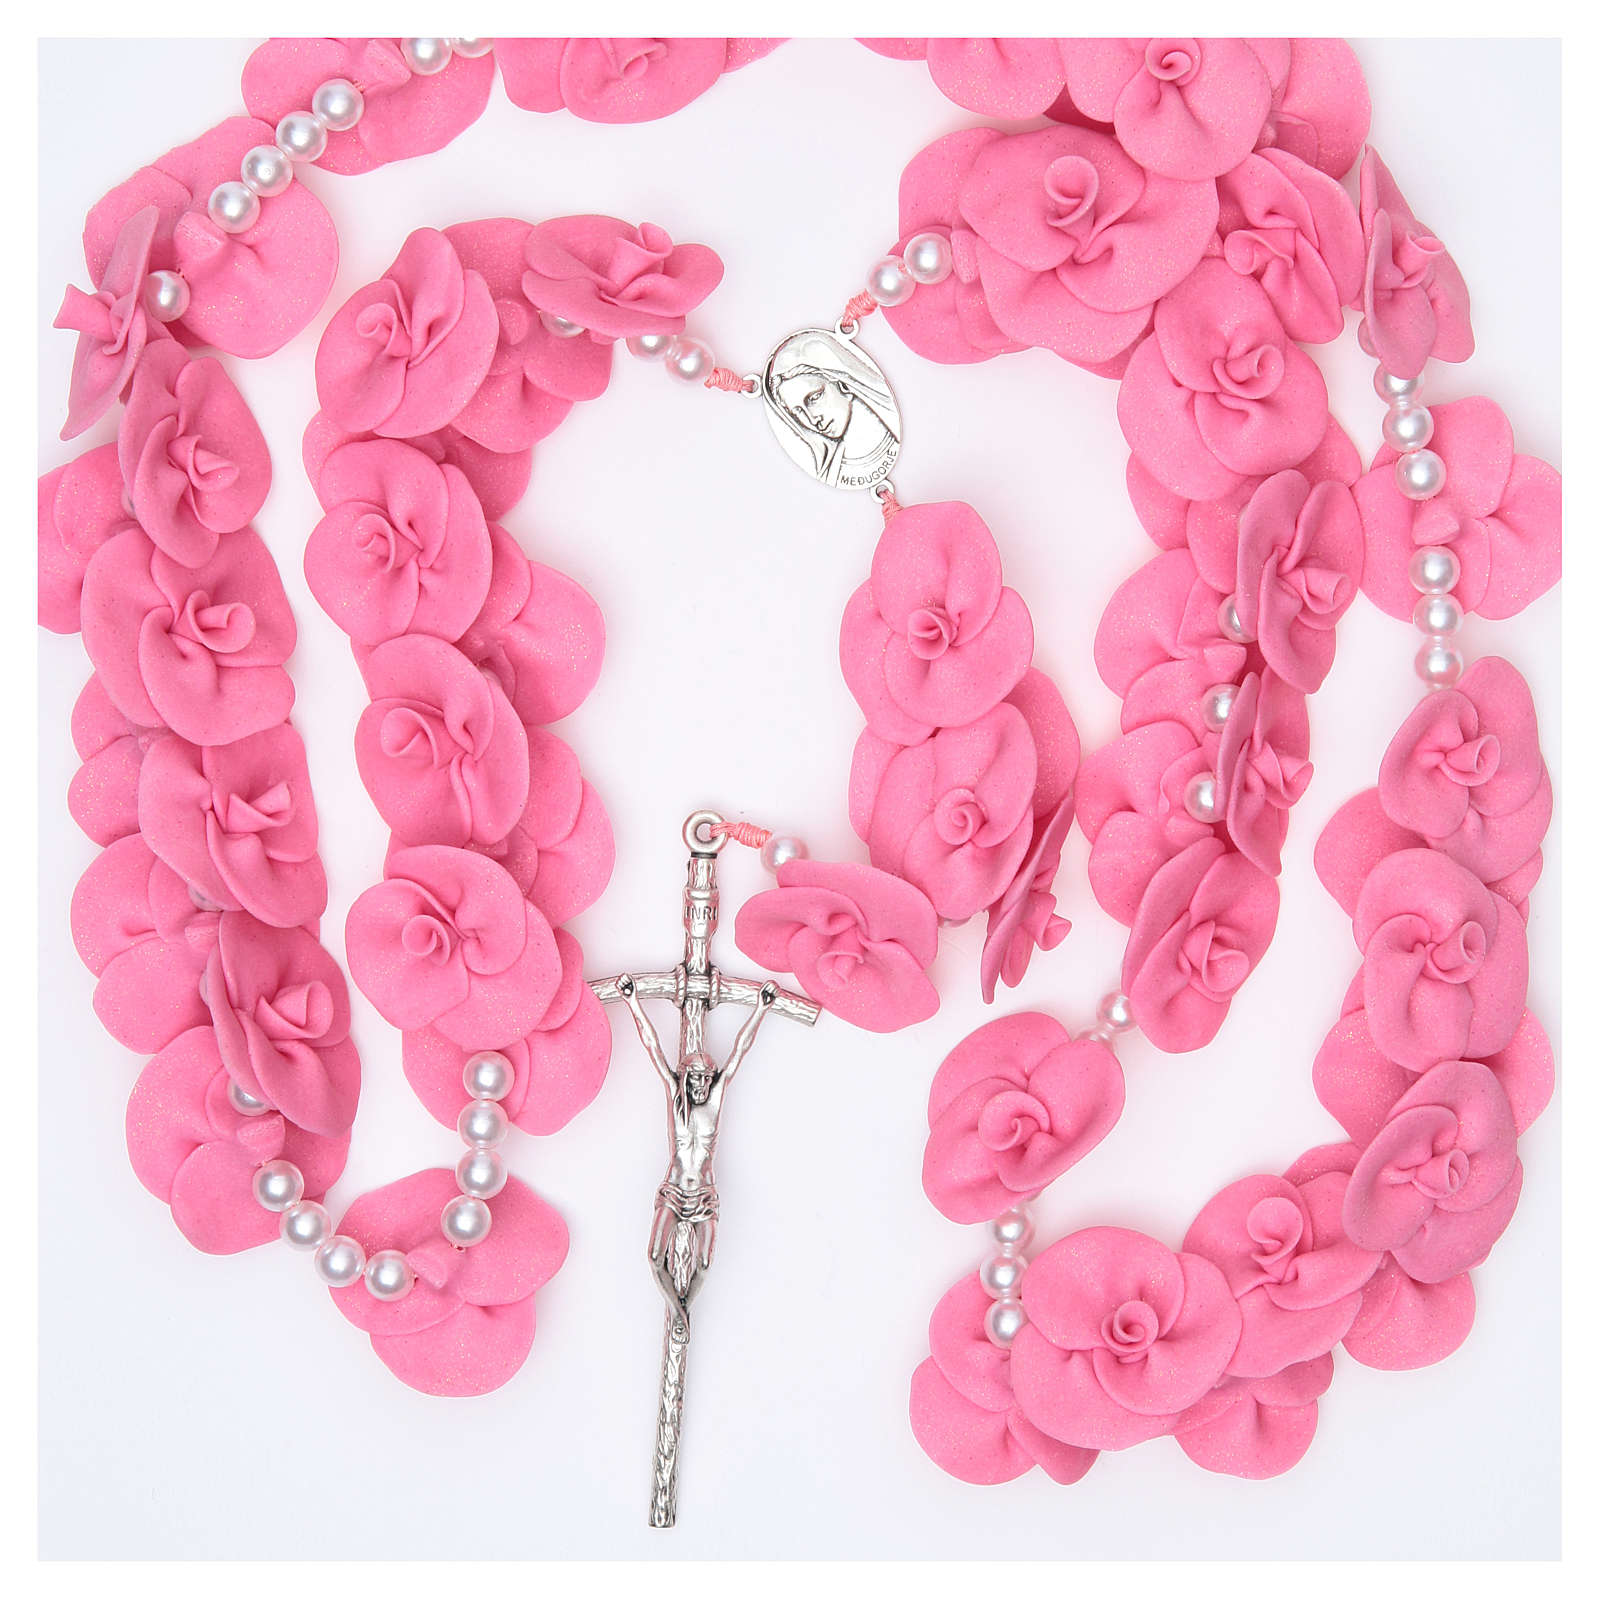 Headboard Medjugorje rosary with dark pink roses 4